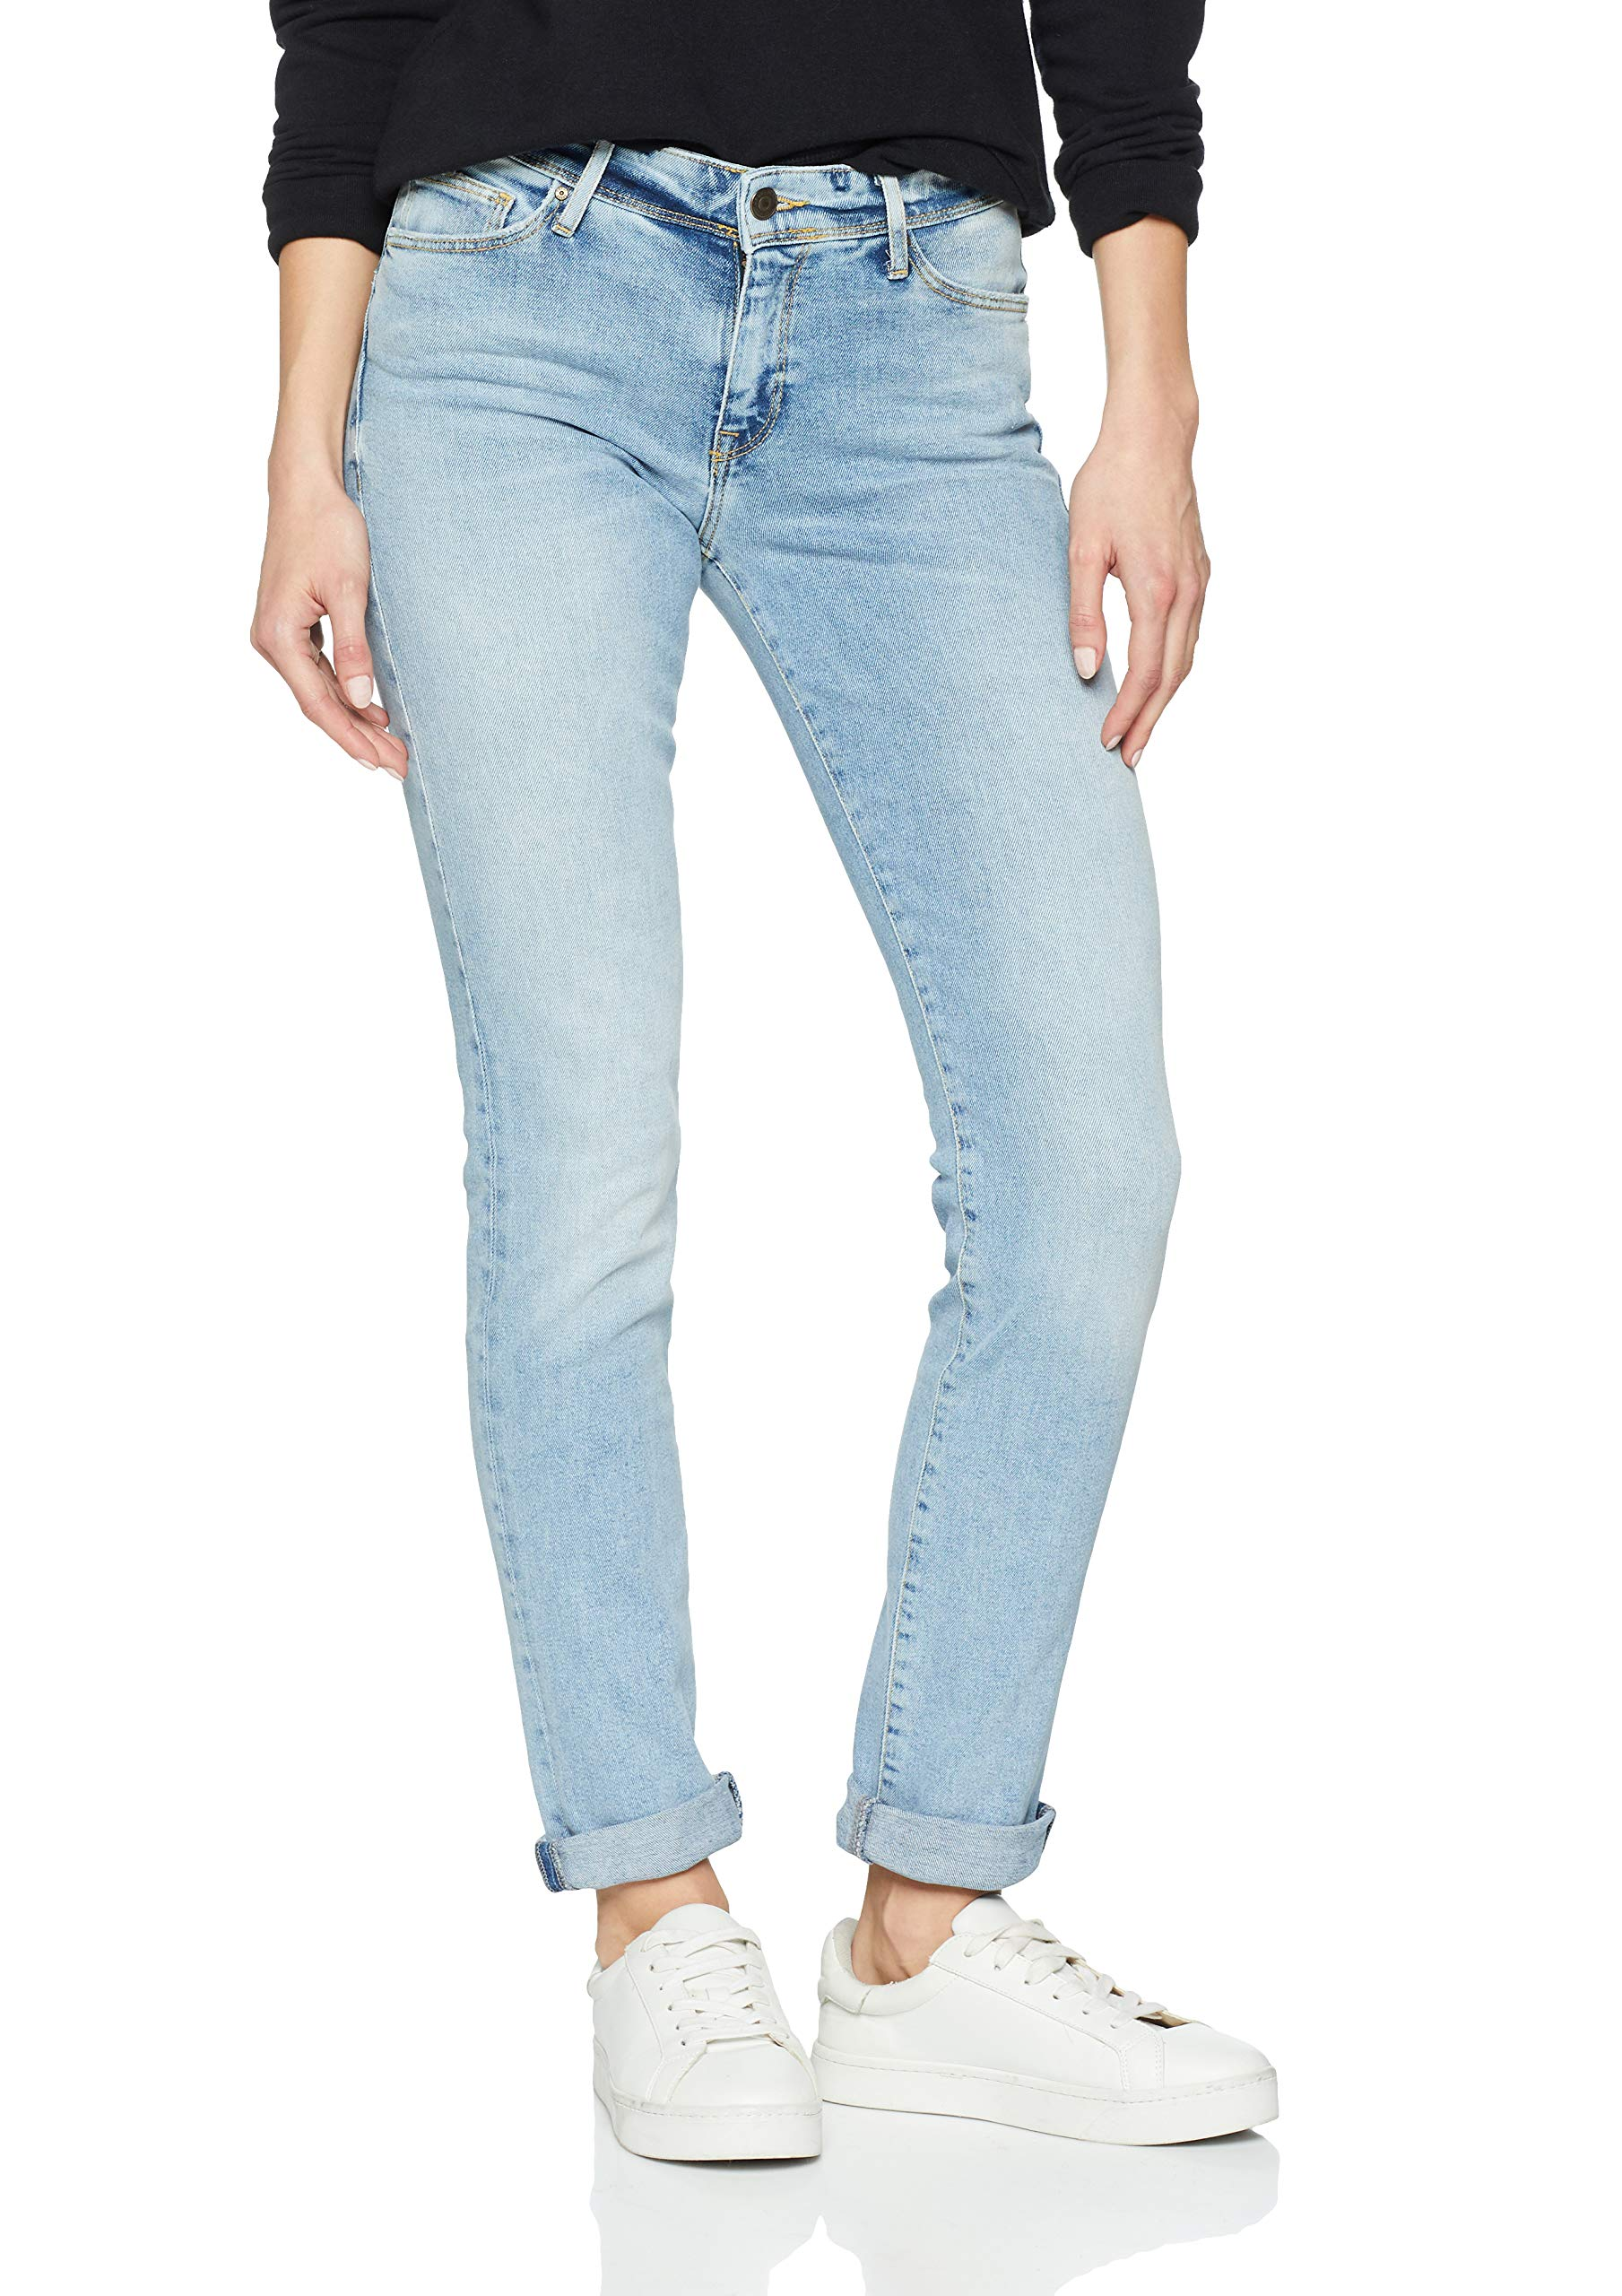 30Femme Anya 150W29 SlimBleulight Blue Cross Jeans Used l30taille Jean Fabricant29 qSUzVpMG